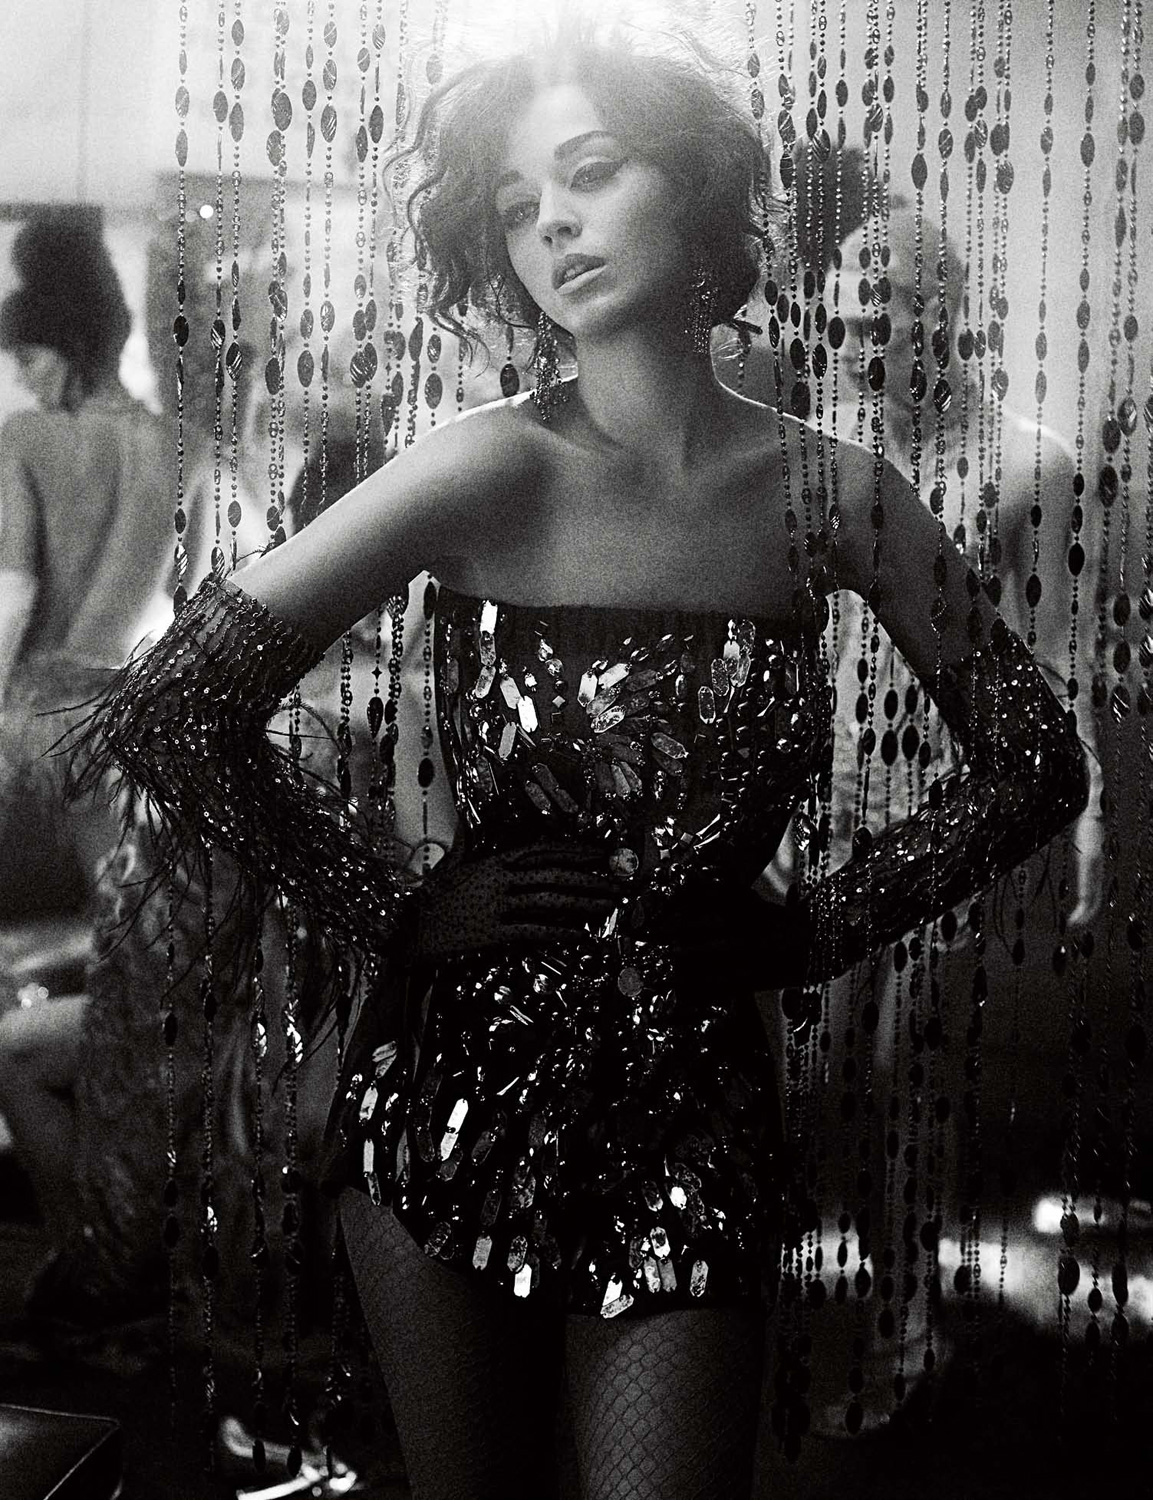 katyperryinterview11 Hot Shots:  Katy Perry Poses It Up For Interview Magazine